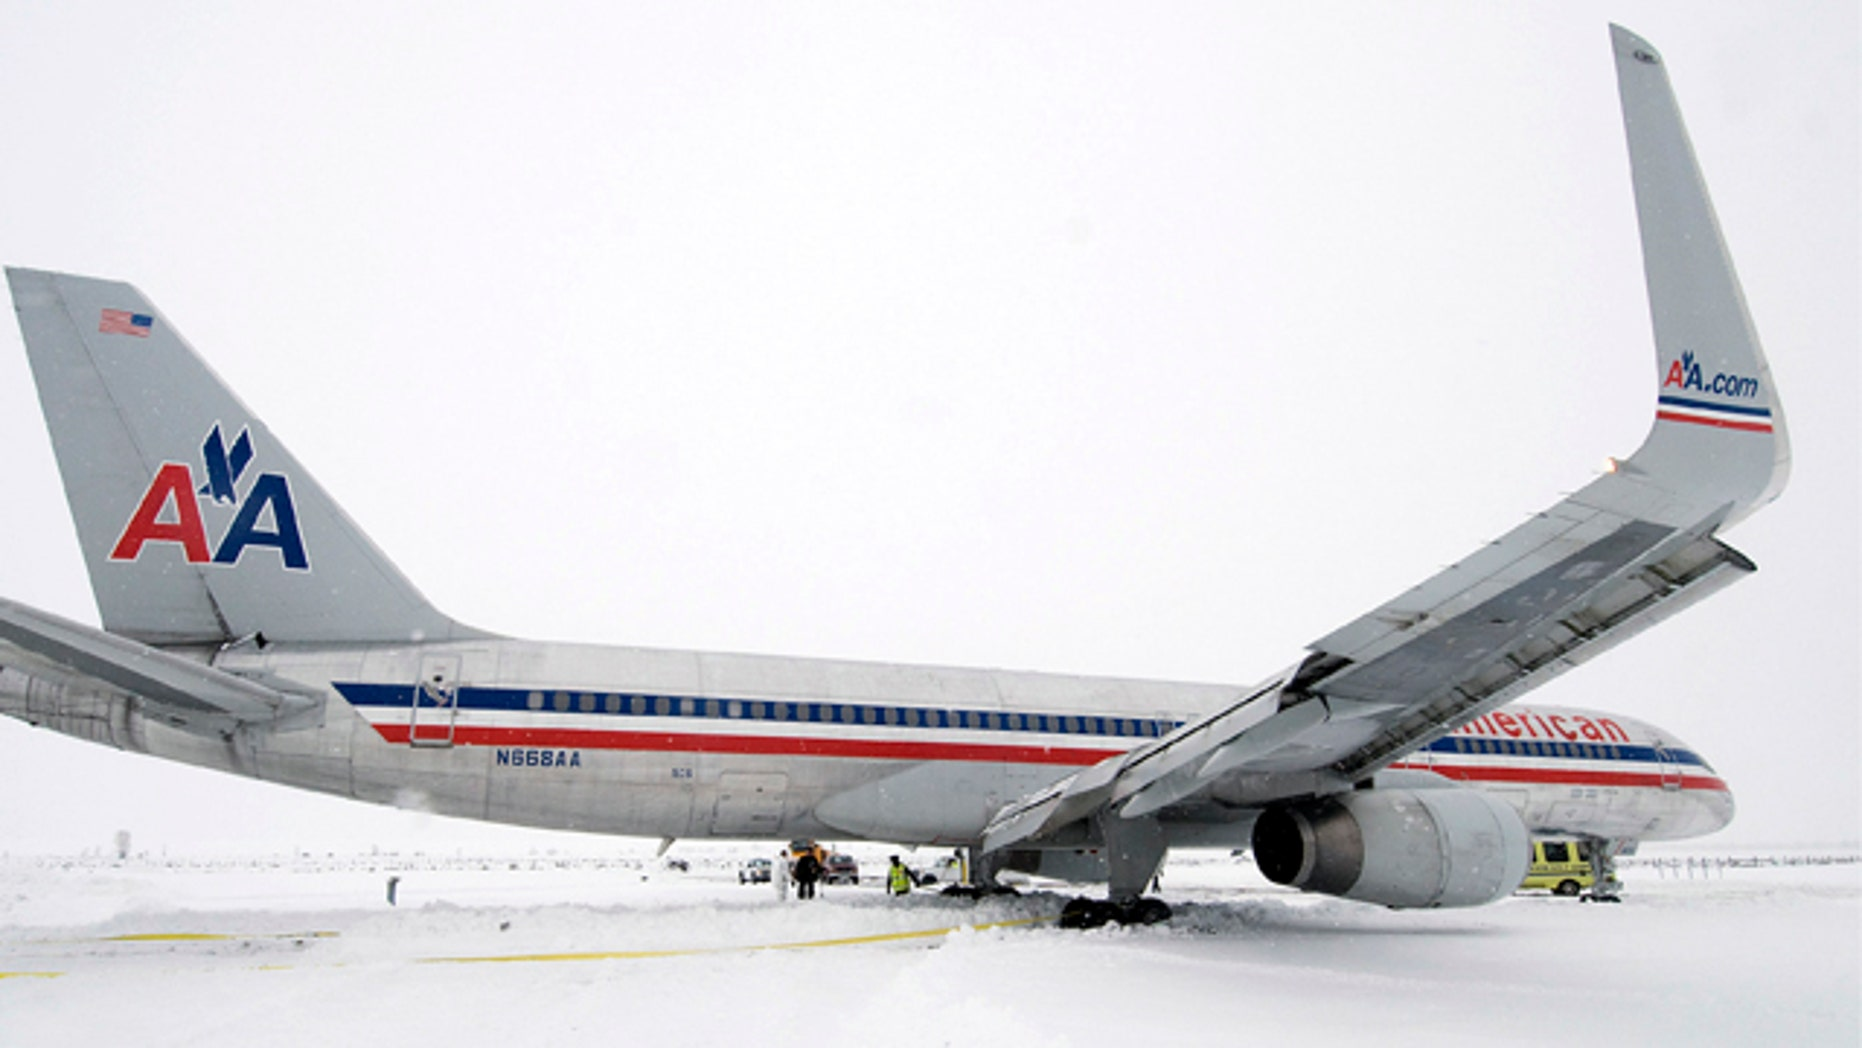 Dec. 29, 2010: Crews work to dig out an American Airlines 757 airplane that slid more than 650 feet off the end of the runway